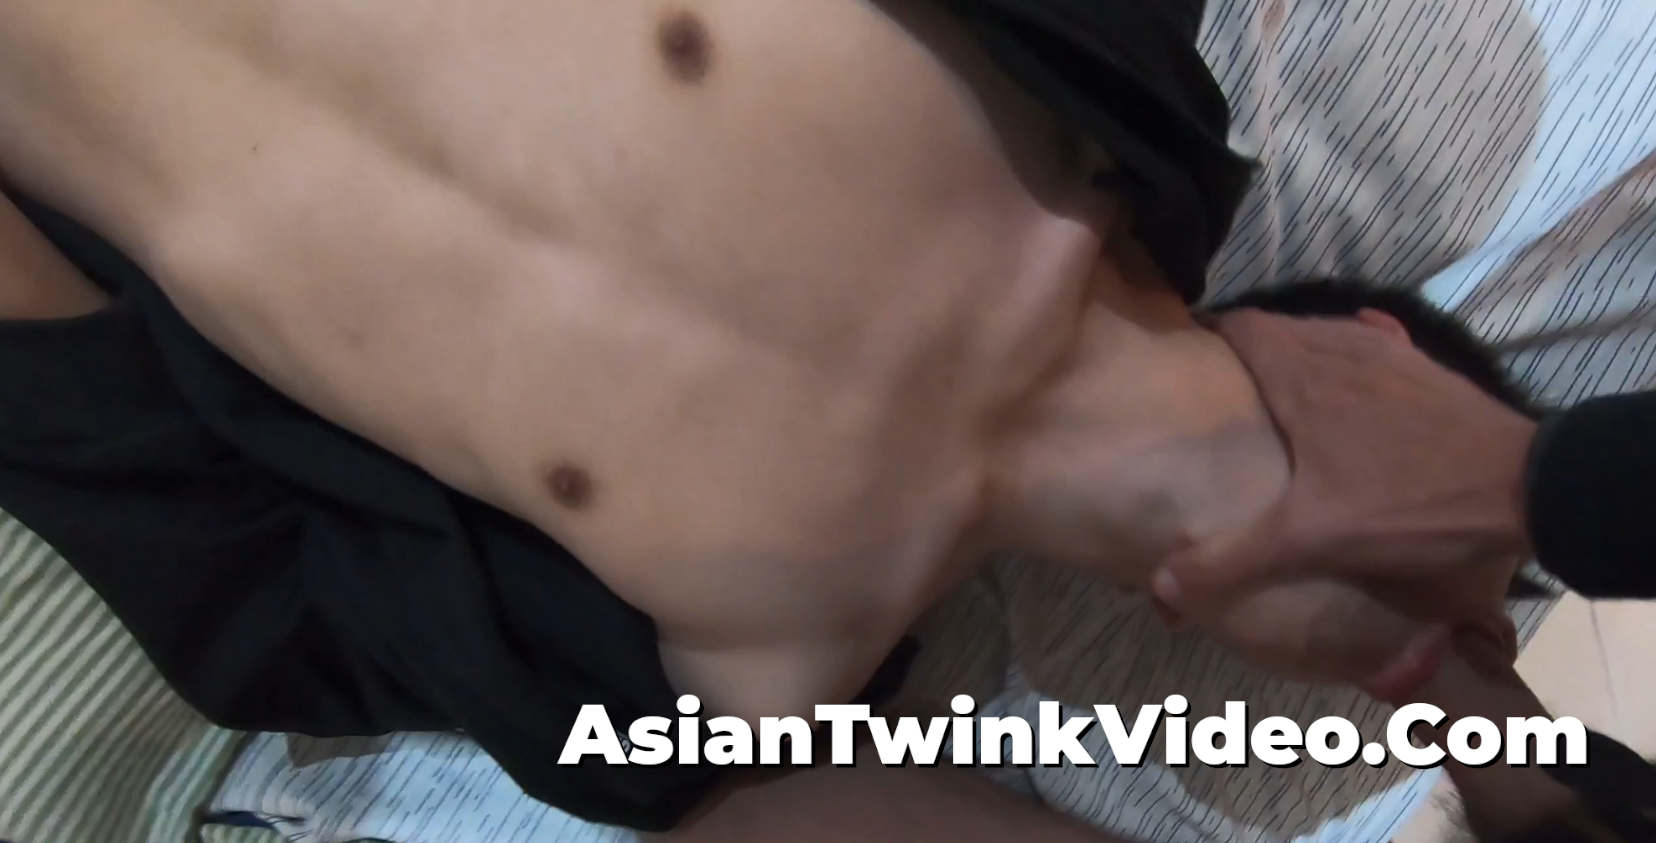 Stretching And Breeding Cute Asian Gay Twink